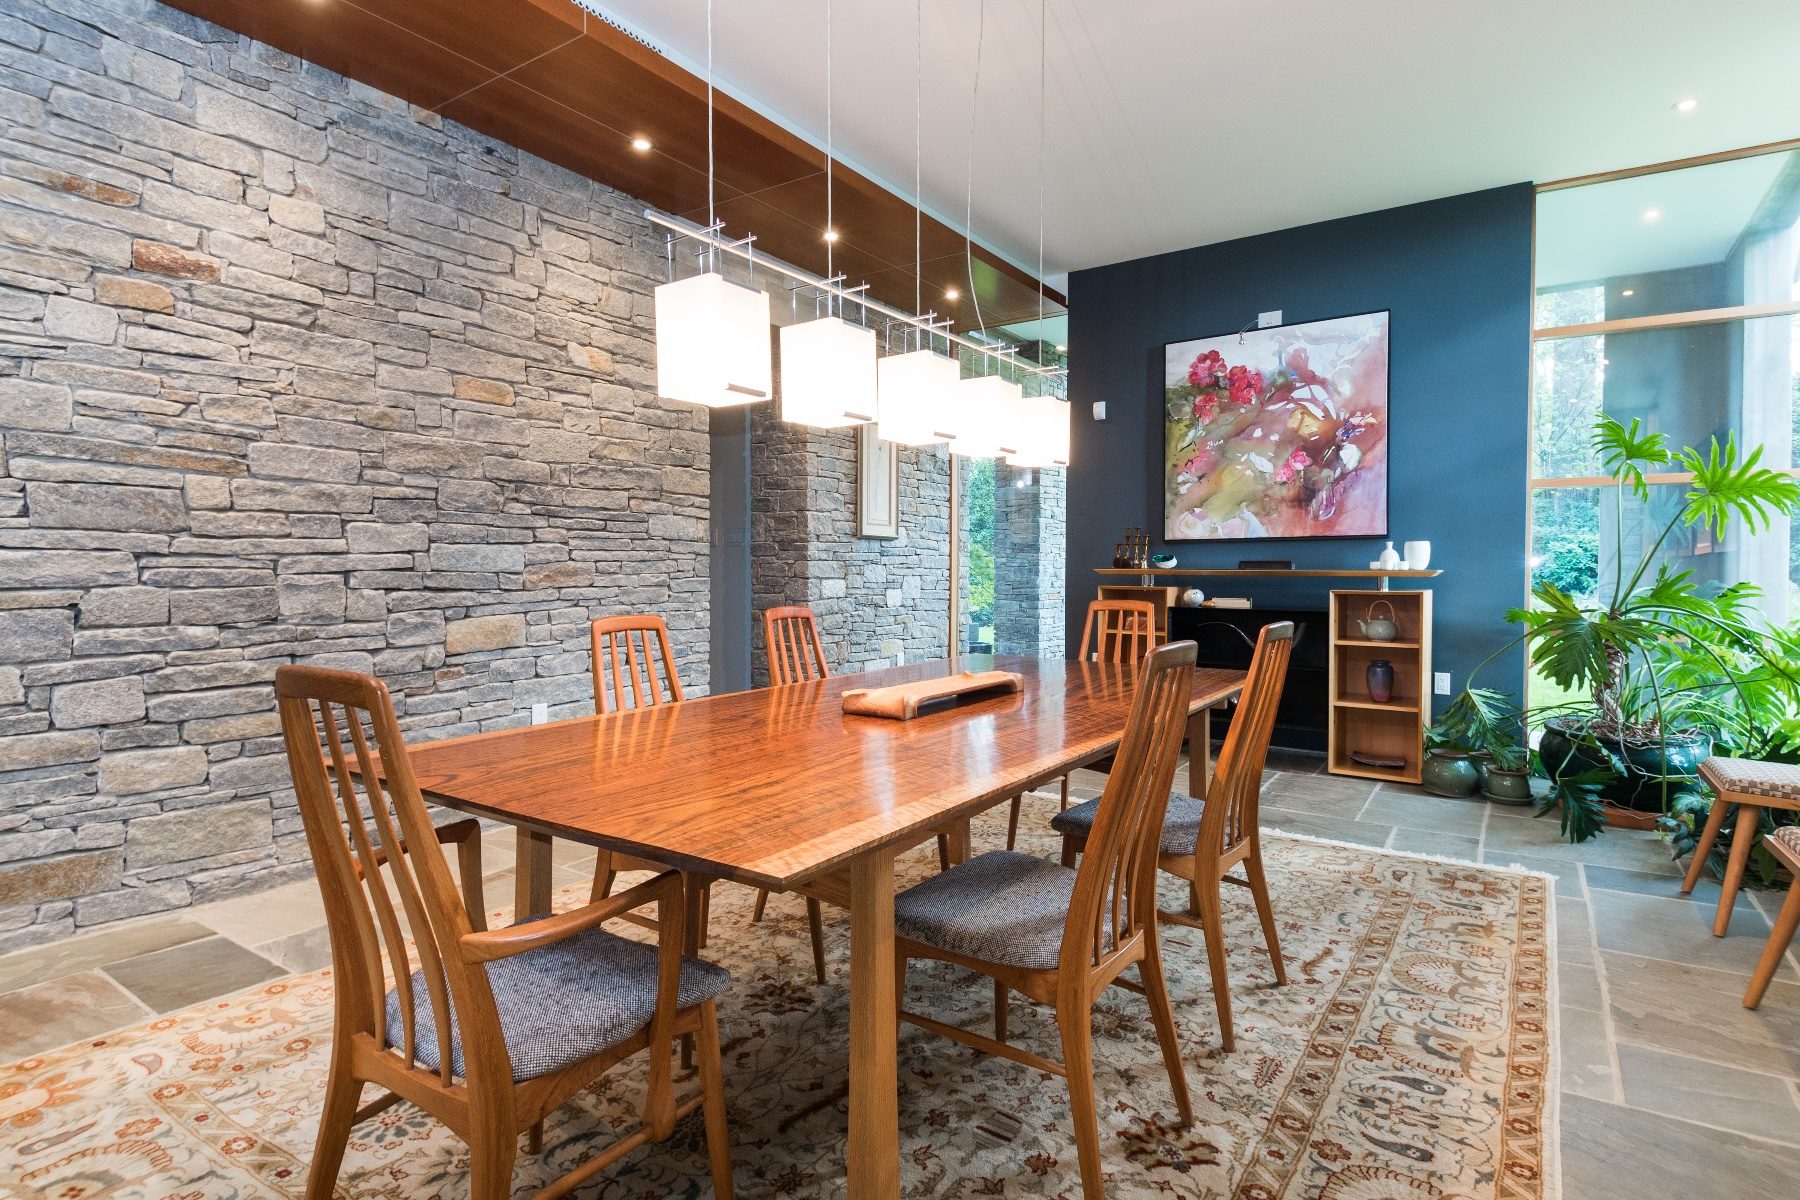 Additional photo for property listing at 1012 Langley Hill Drive, Mclean  McLean, Virginia 22101 Estados Unidos